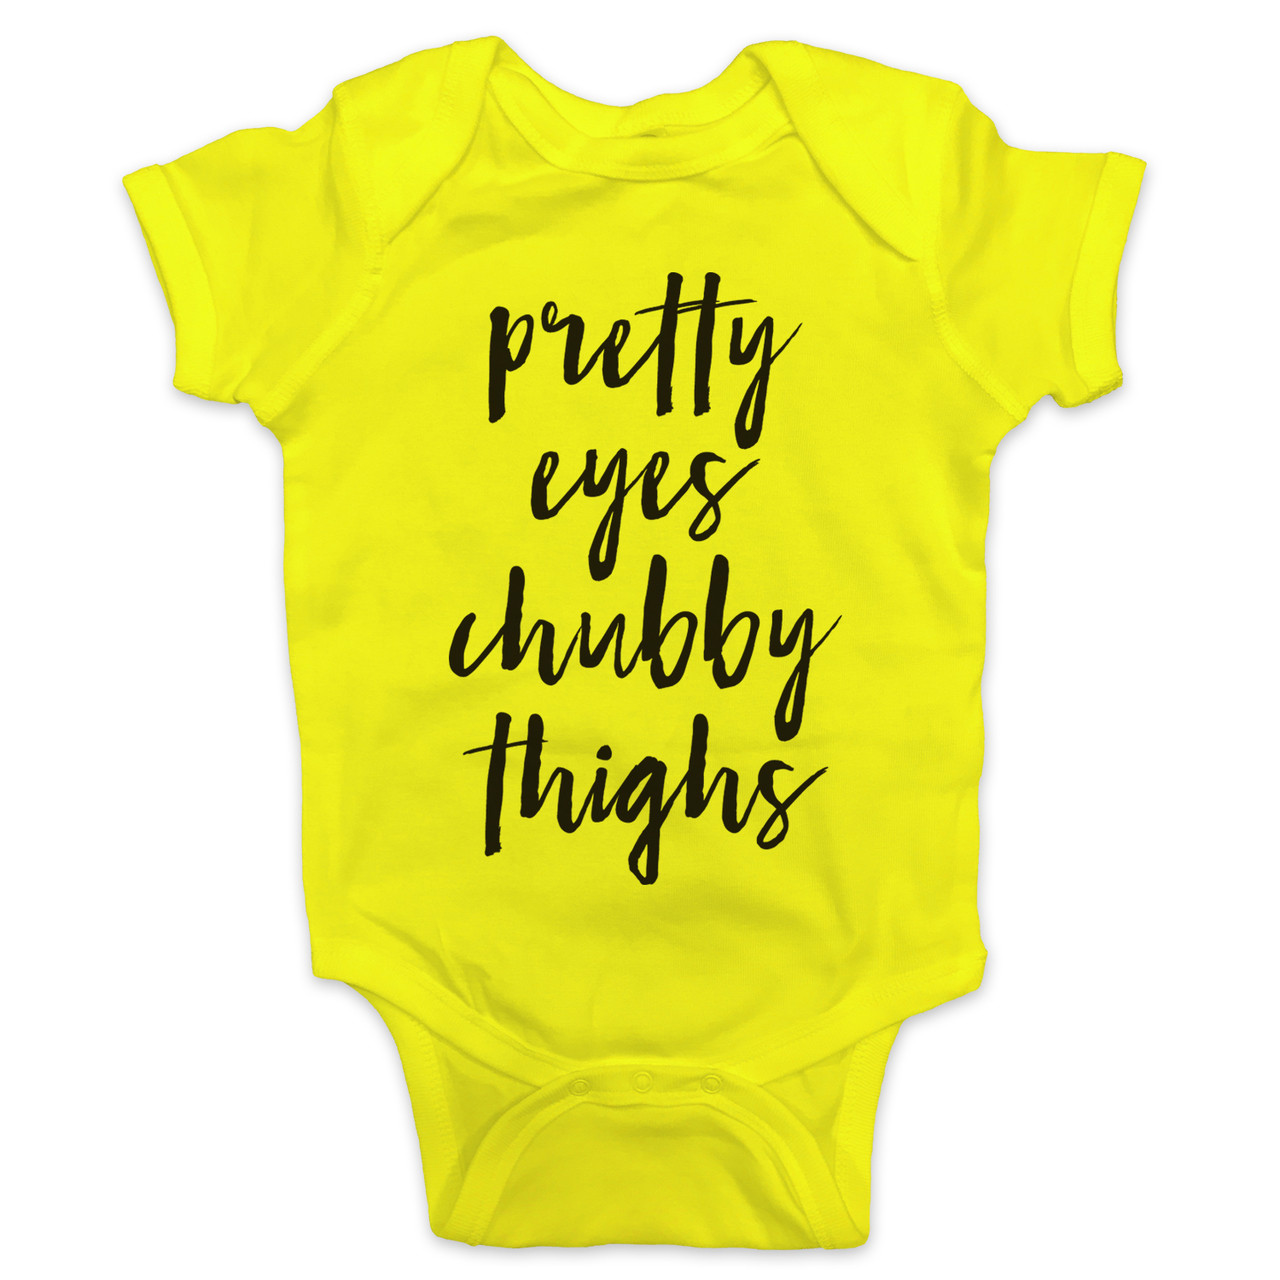 Thick Thighs and Pretty Eyes Baby Onesie Personalize with a Name